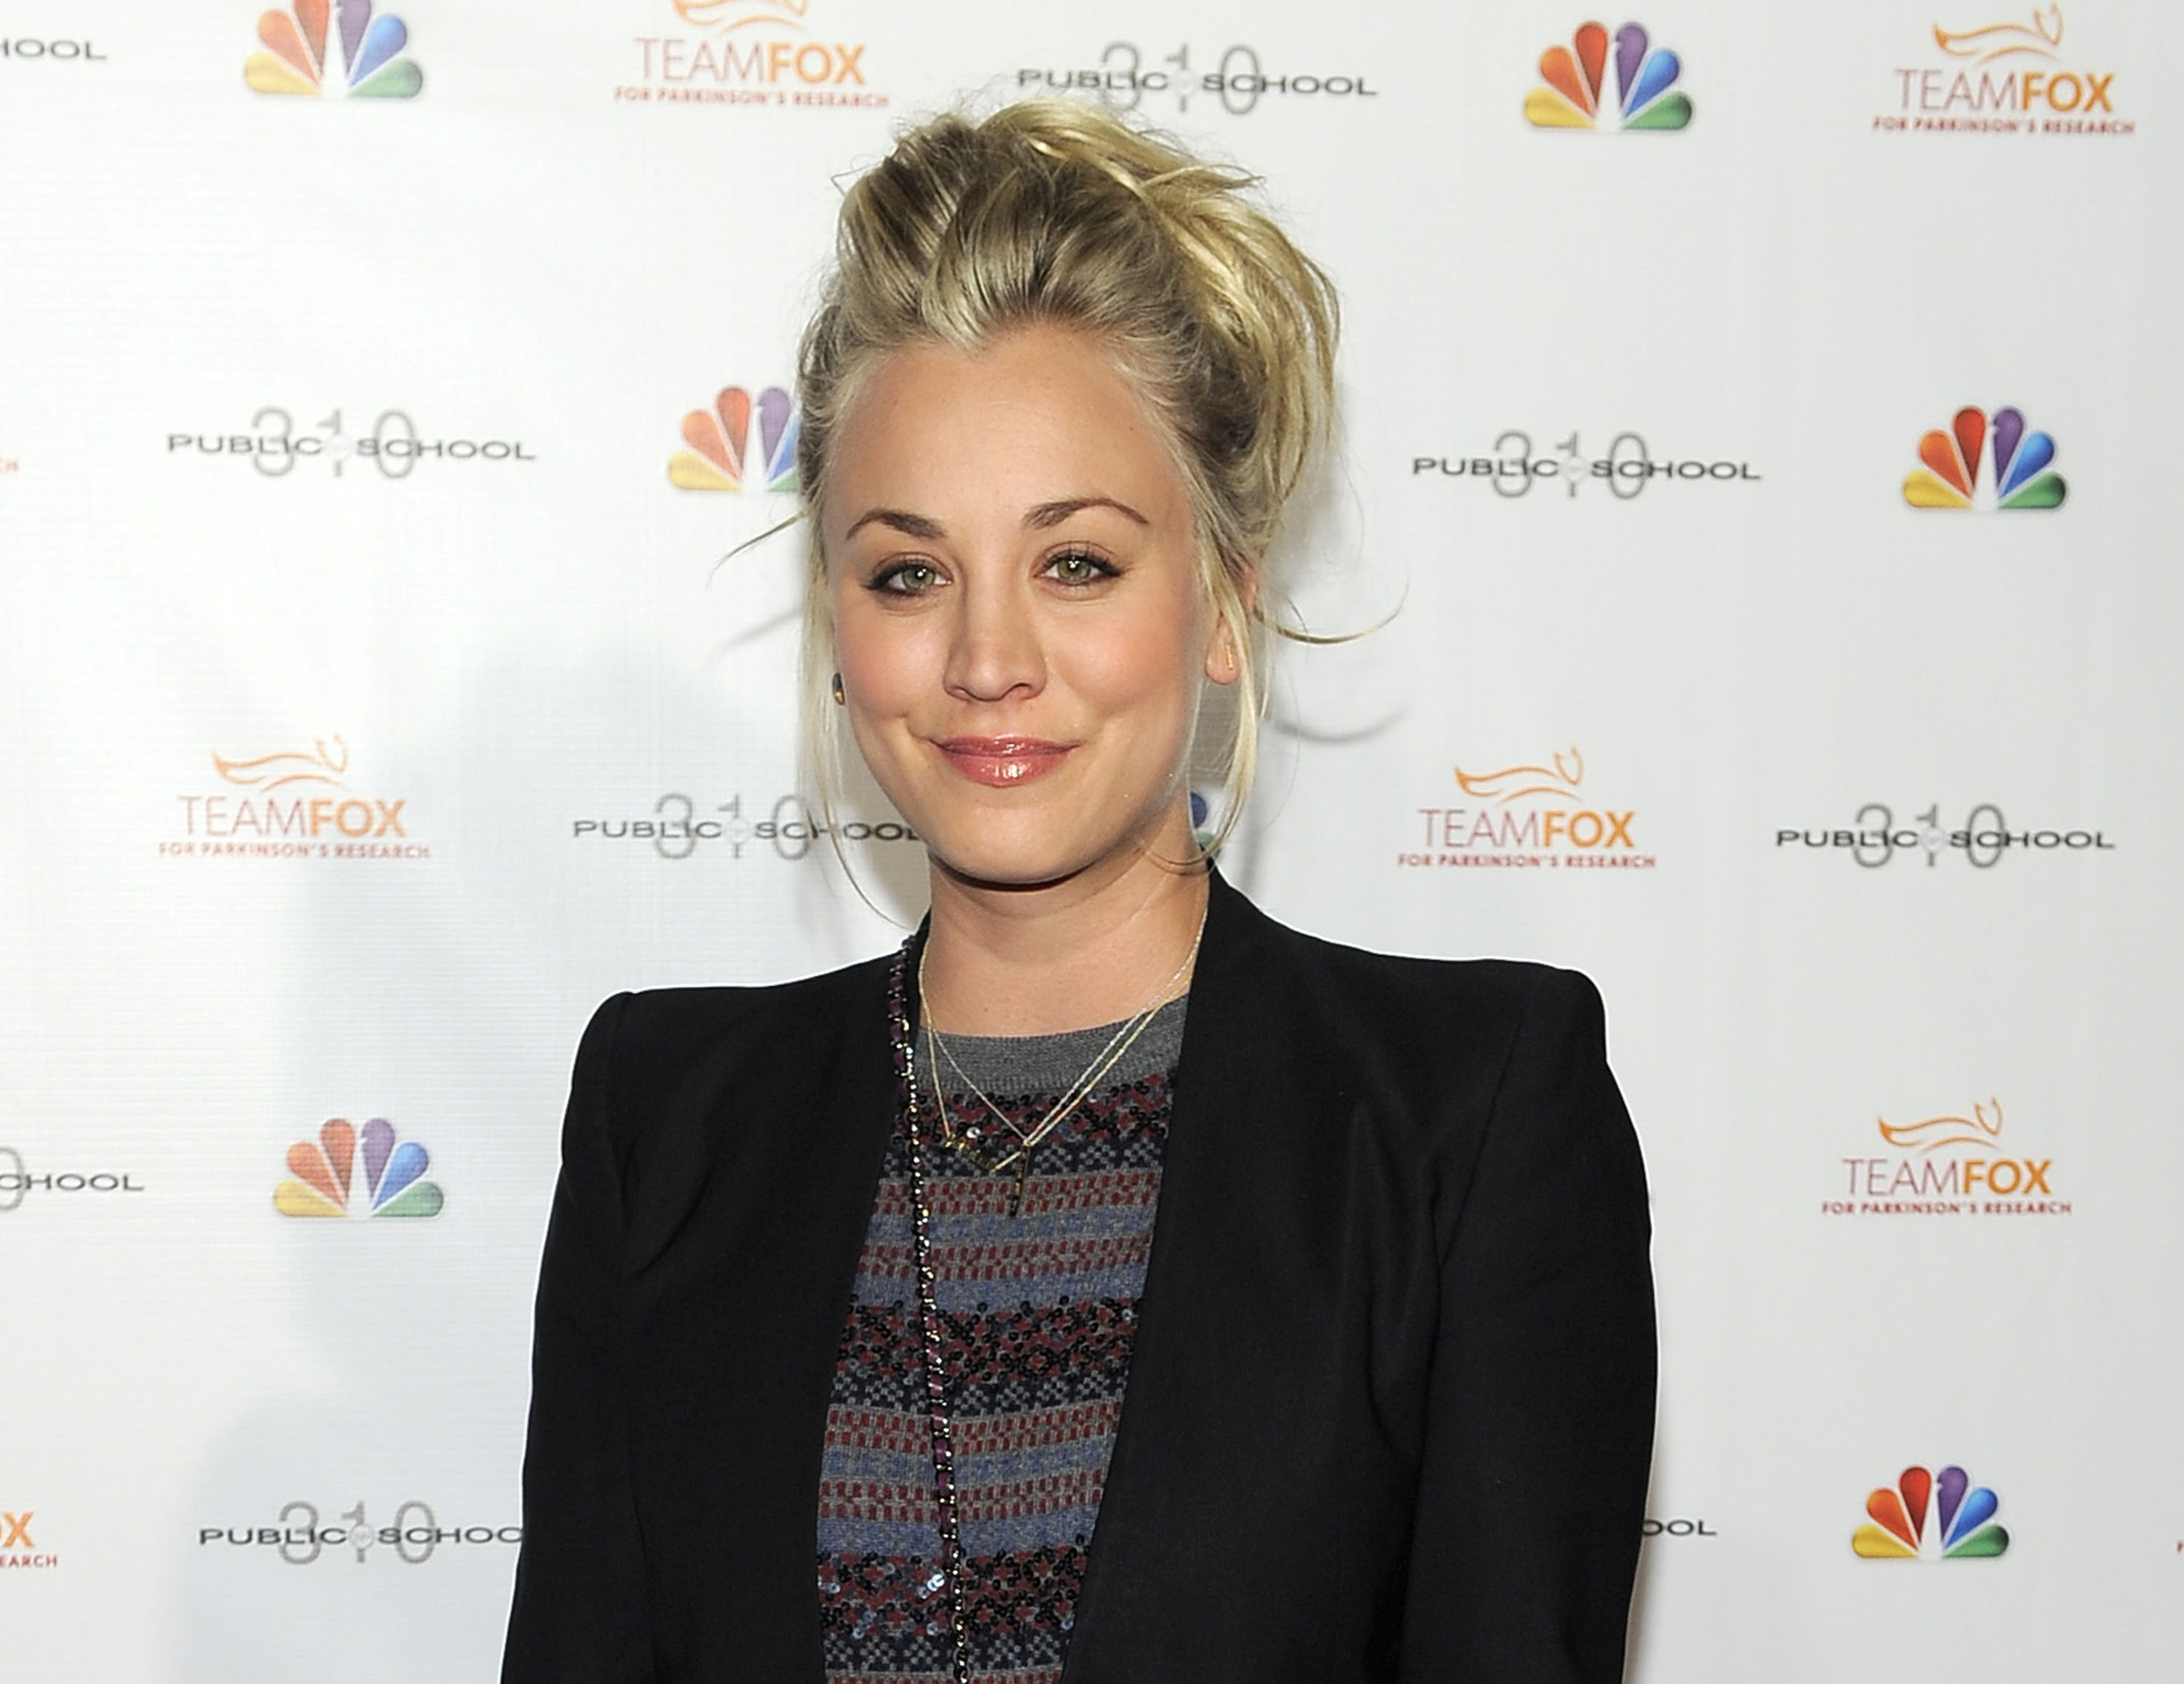 Kaley Cuoco: New Pictures Appear in Potential Second Wave of Hacked Photos as Twitter Account Makes Claims